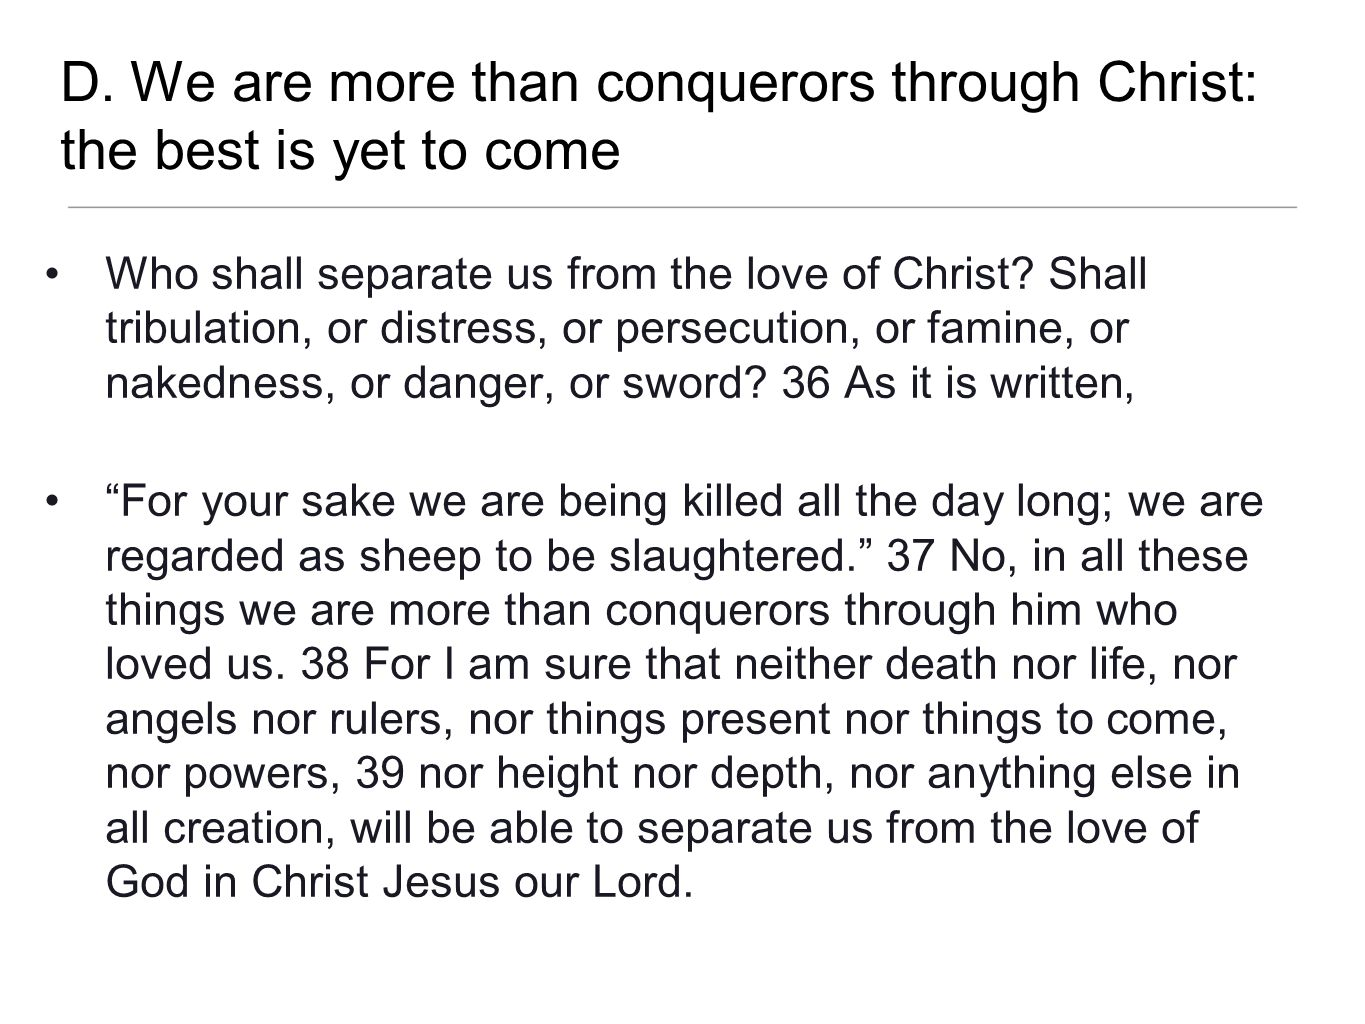 D. We are more than conquerors through Christ: the best is yet to come